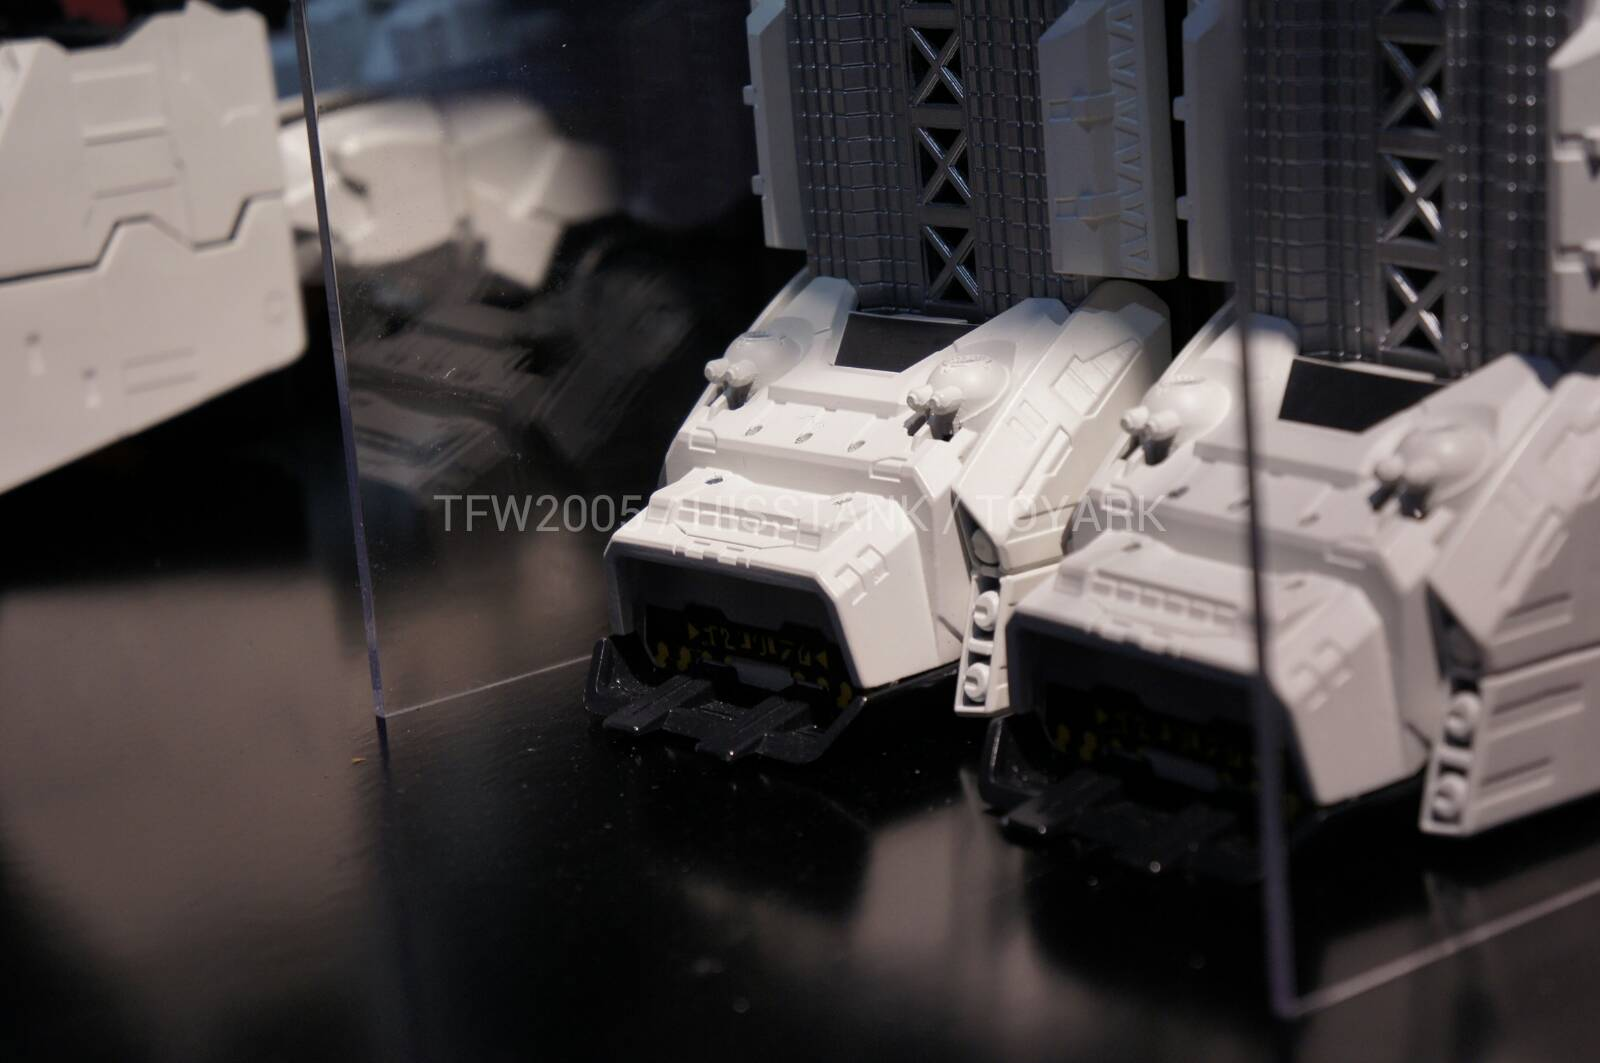 Transformers-Metroplex-Toy-Fair-2013-010